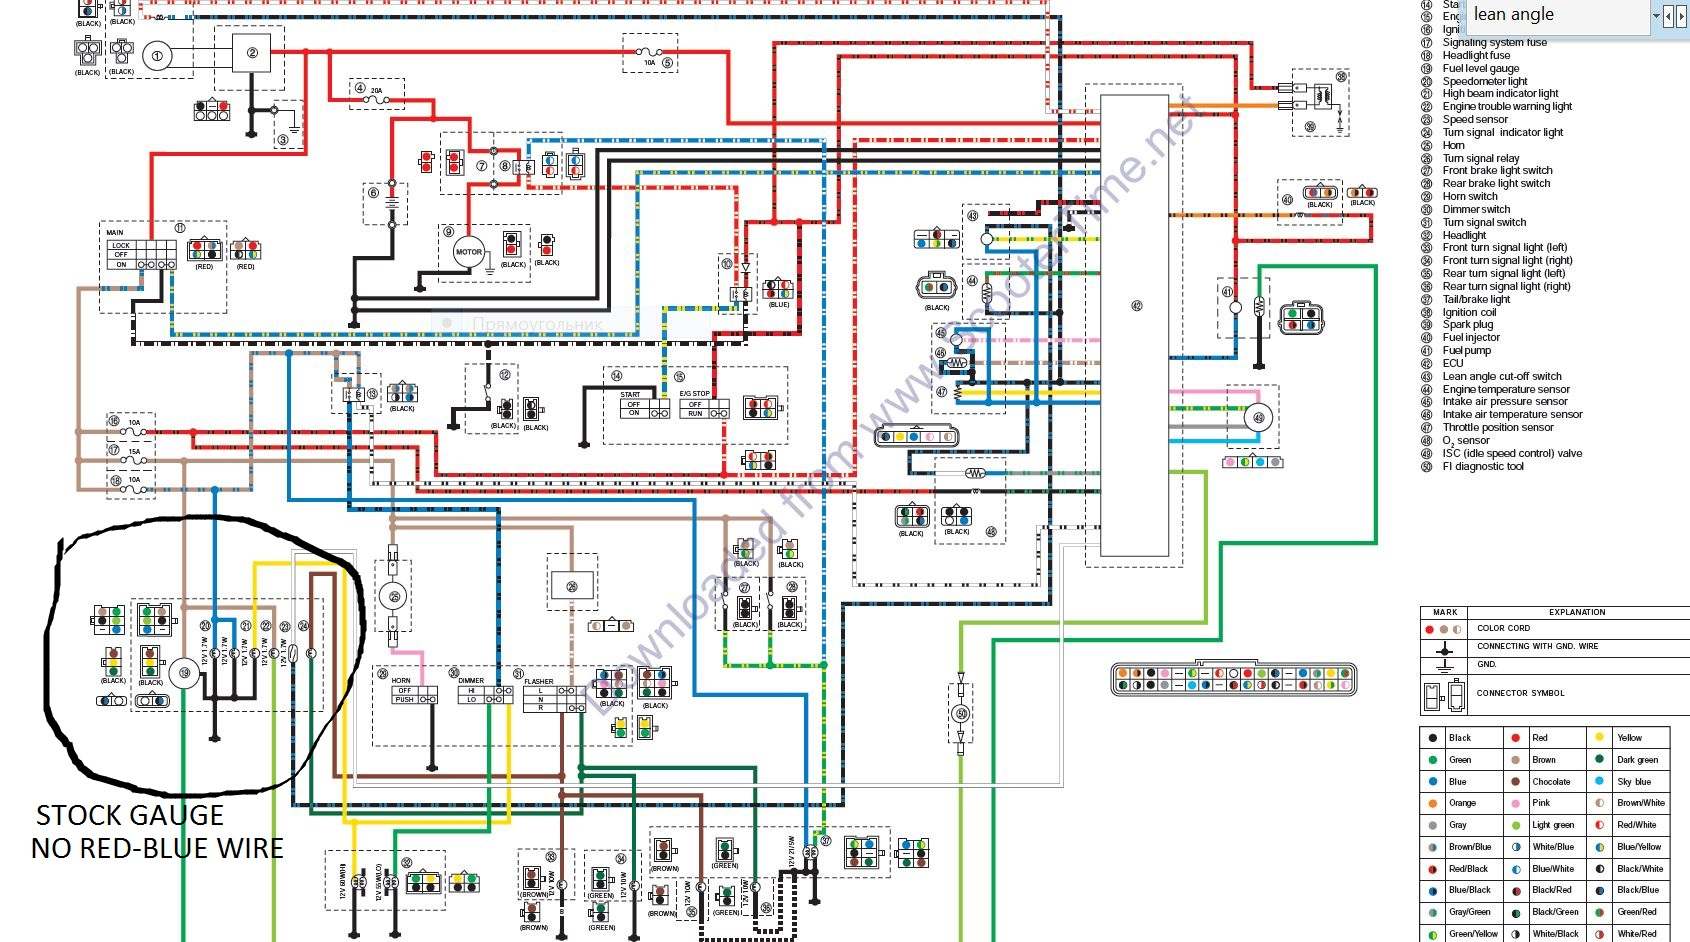 Yamaha Jog Wiring Diagram And Schematics Schematic Sd Another Blog About U2022 2012 Zuma 125